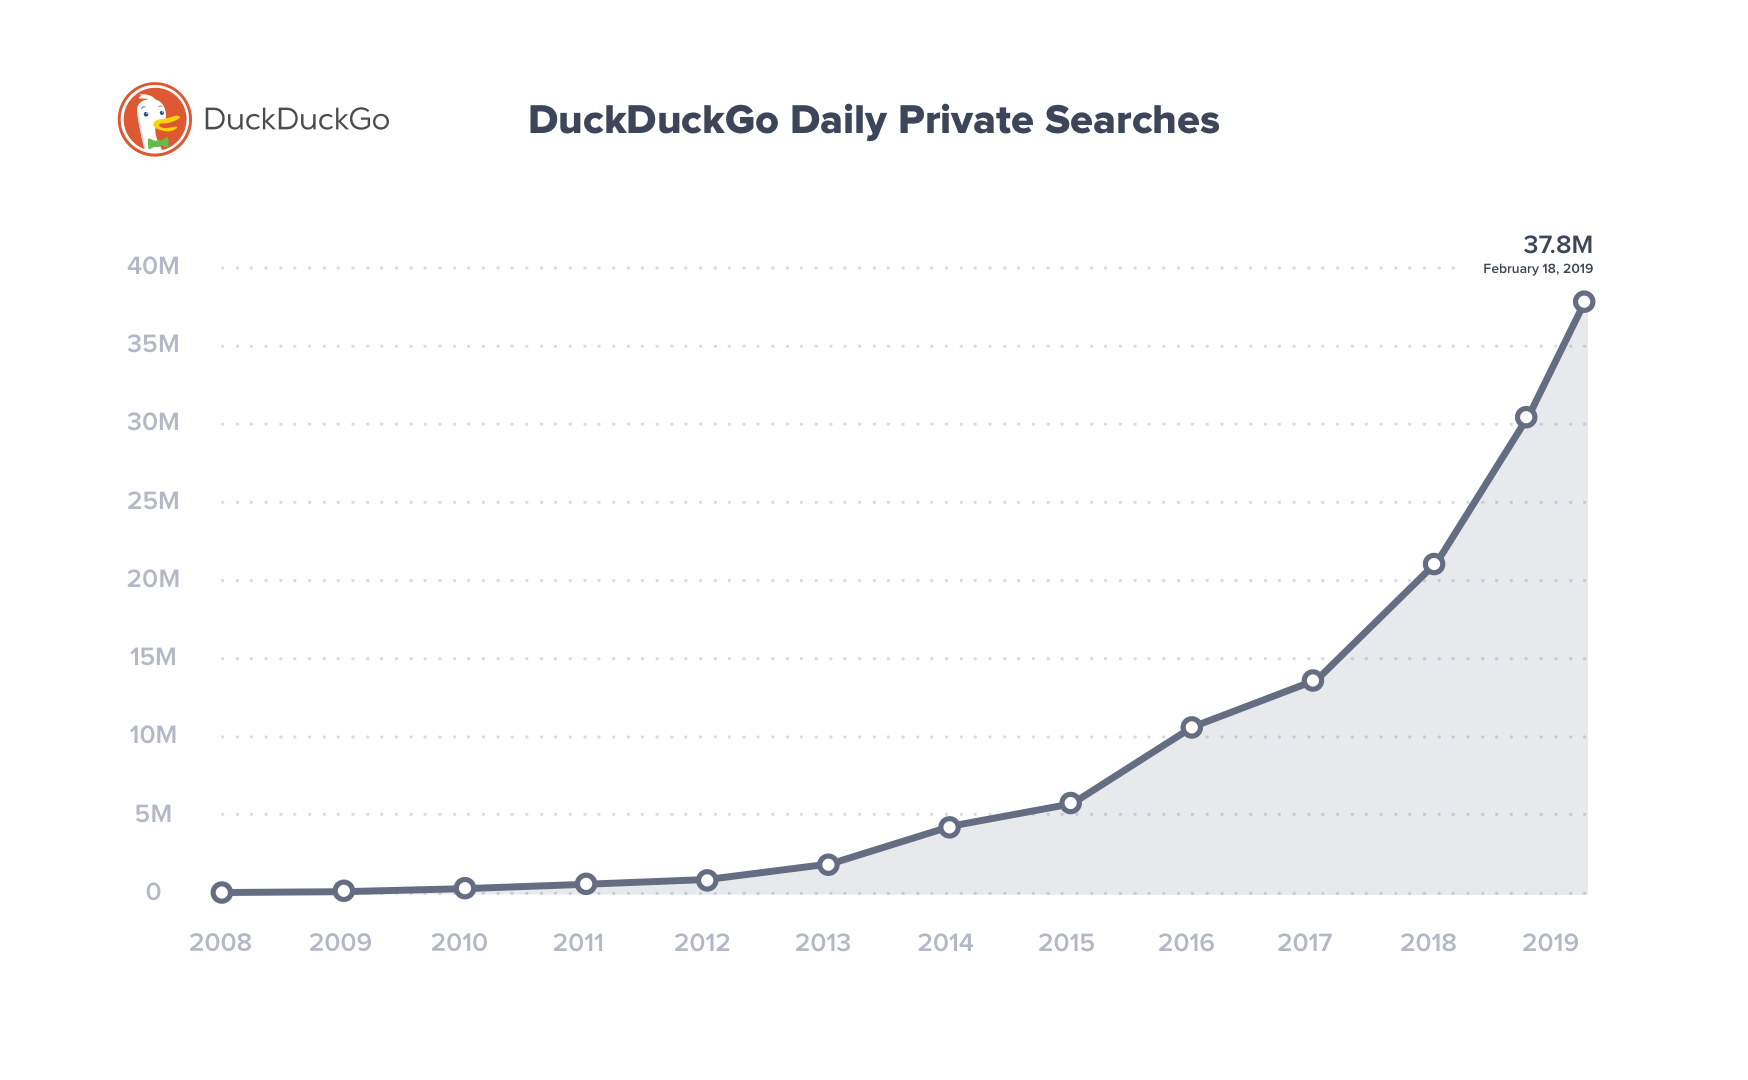 Chart showing the increase in DuckDuckGo traffic from 2008 to 2019.